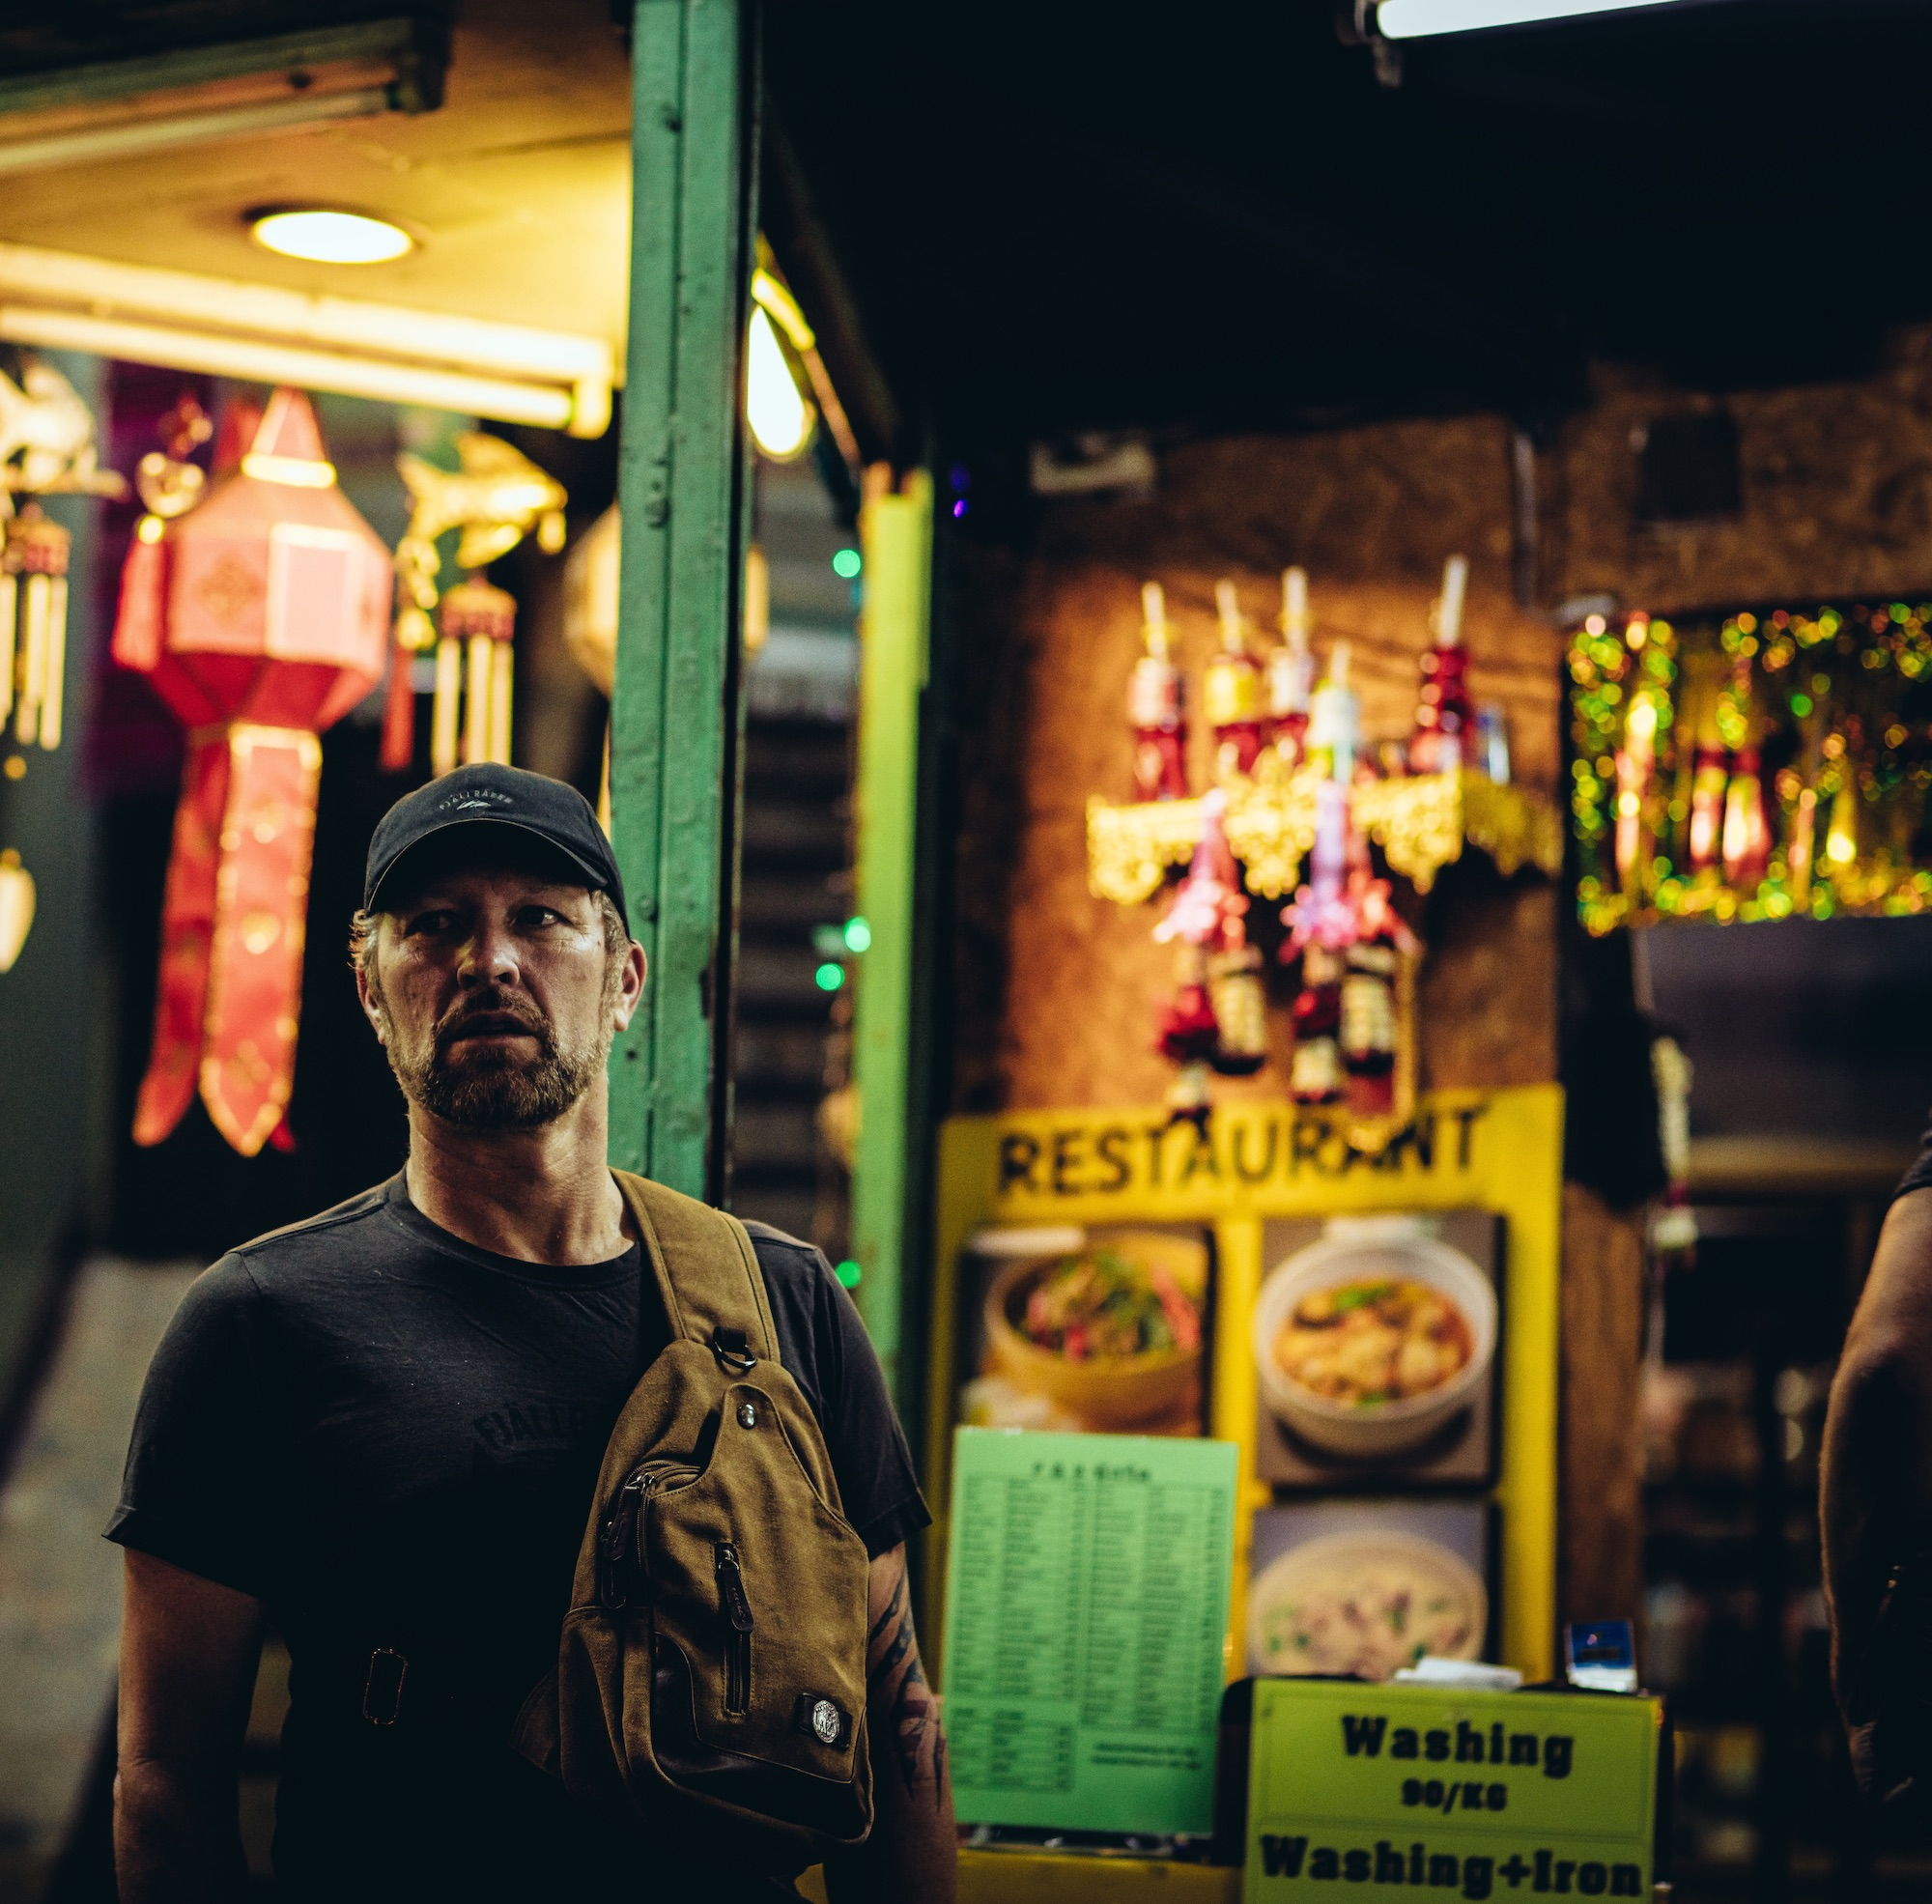 An Exodus Road investigator stands on a Thai street at night.